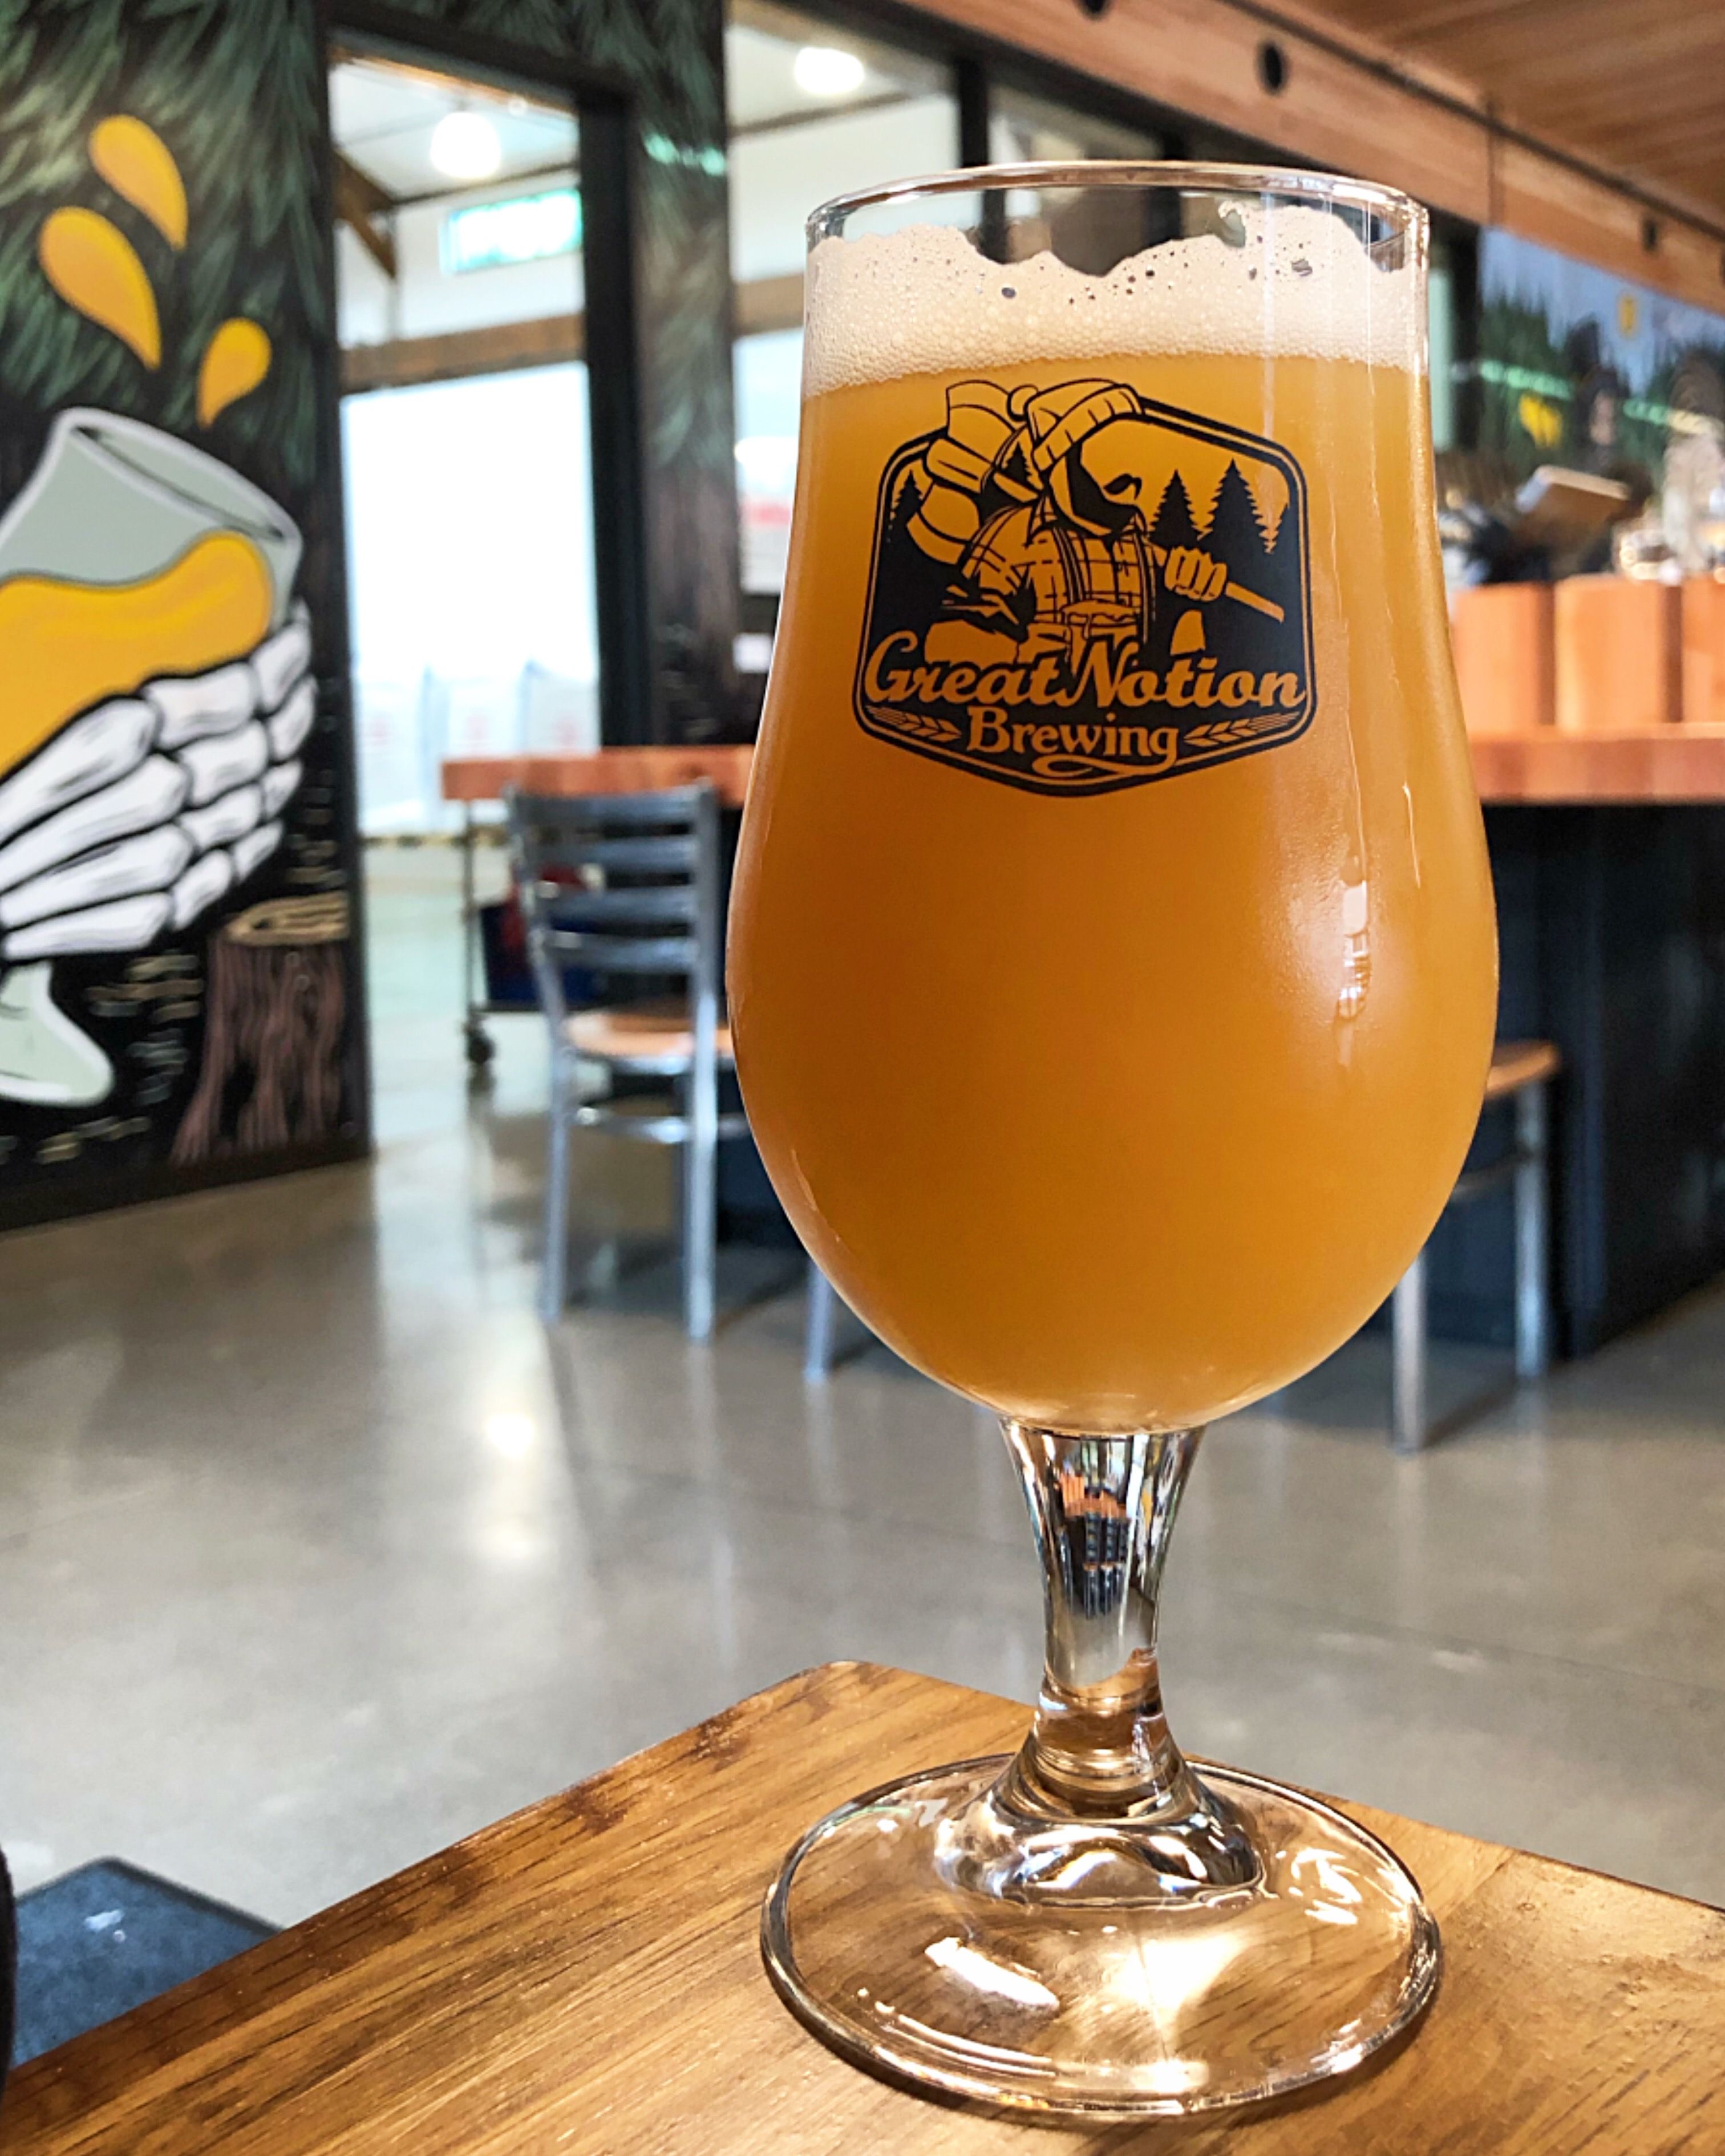 A Hazy IPA at Great Notion Brewing in Northwest Portland.